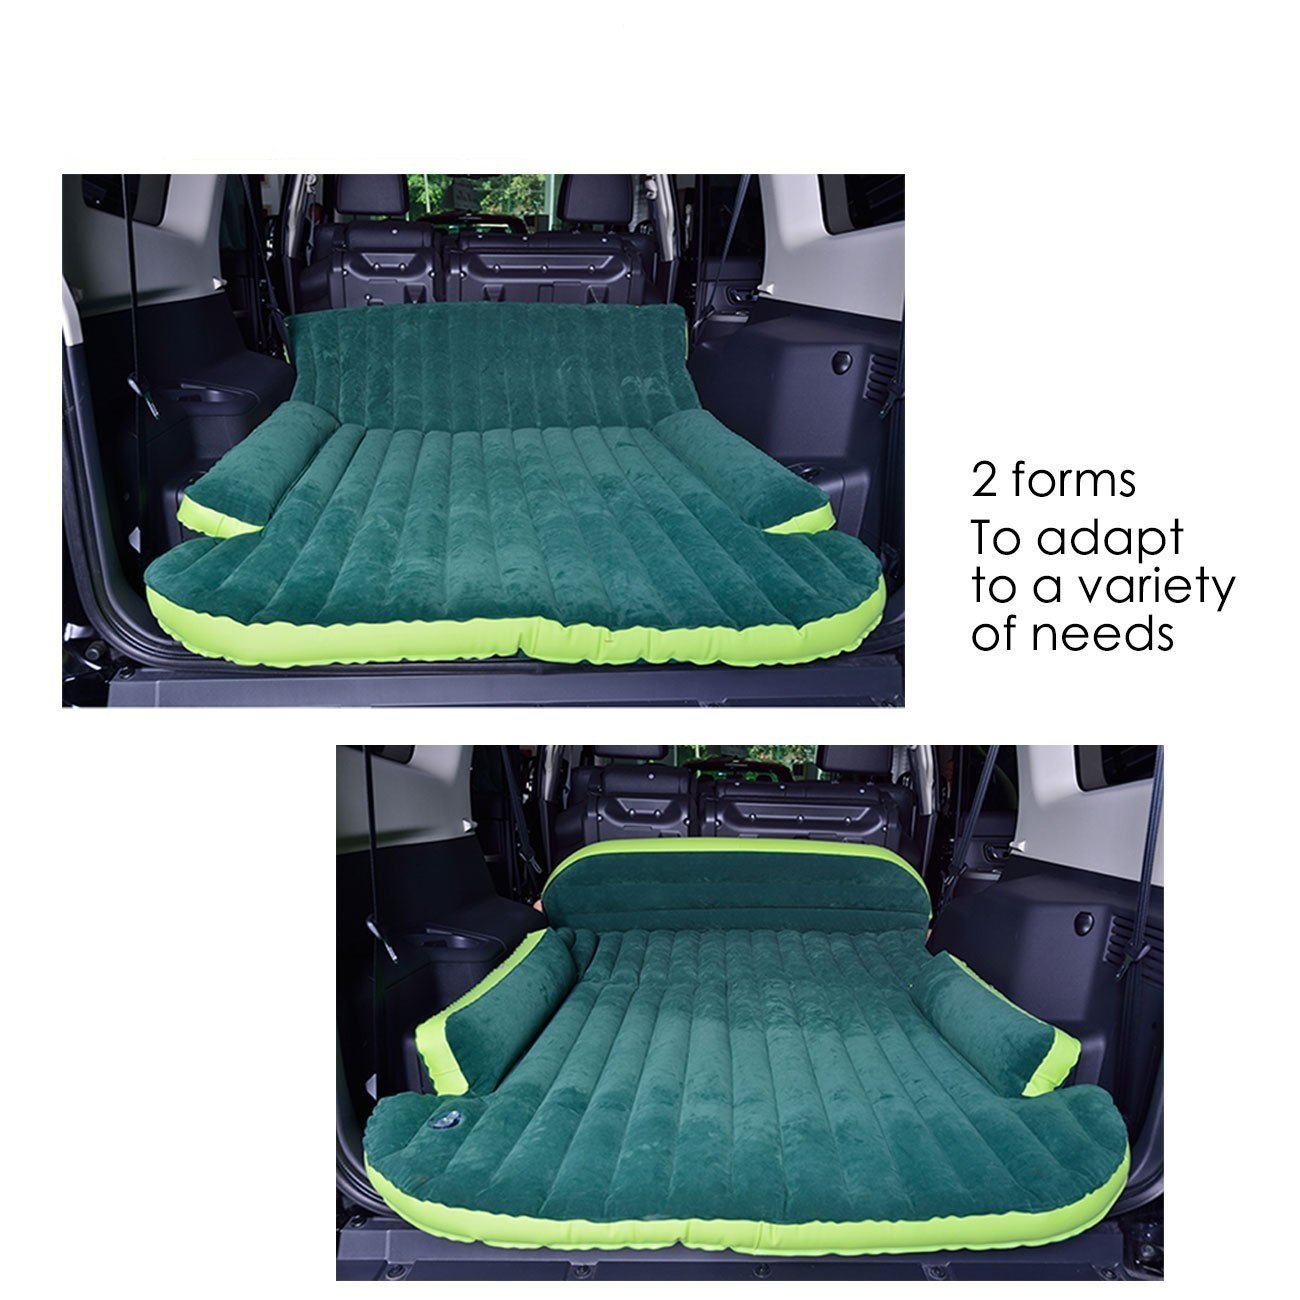 Heavy Duty Inflatable Car Mattress Bed For Suv Minivan Lincoln Town Sleep Back Seat Extended Sports Outdoors